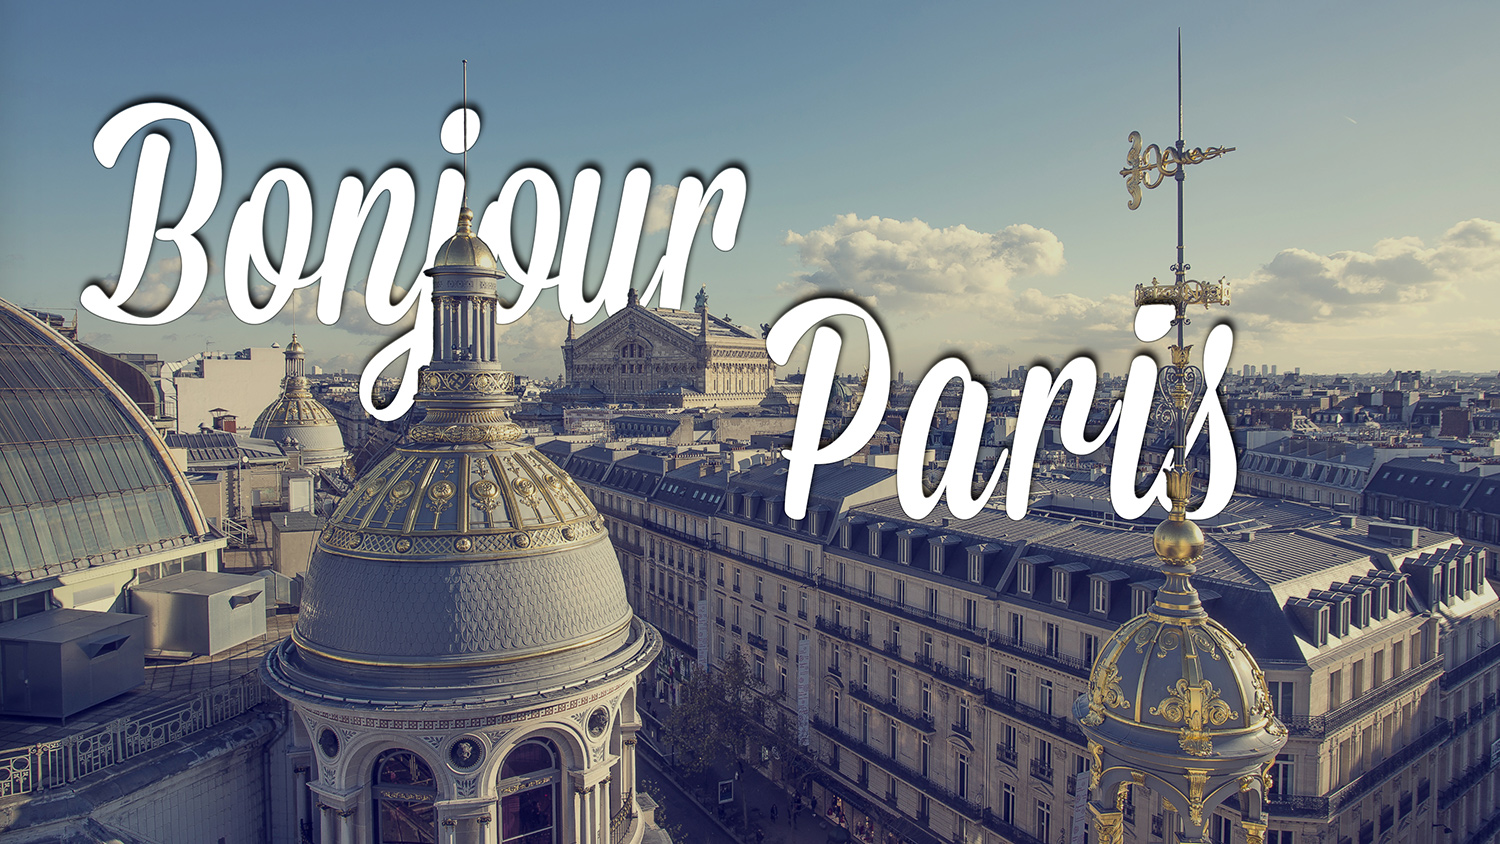 Bonjour Paris's video thumbnail